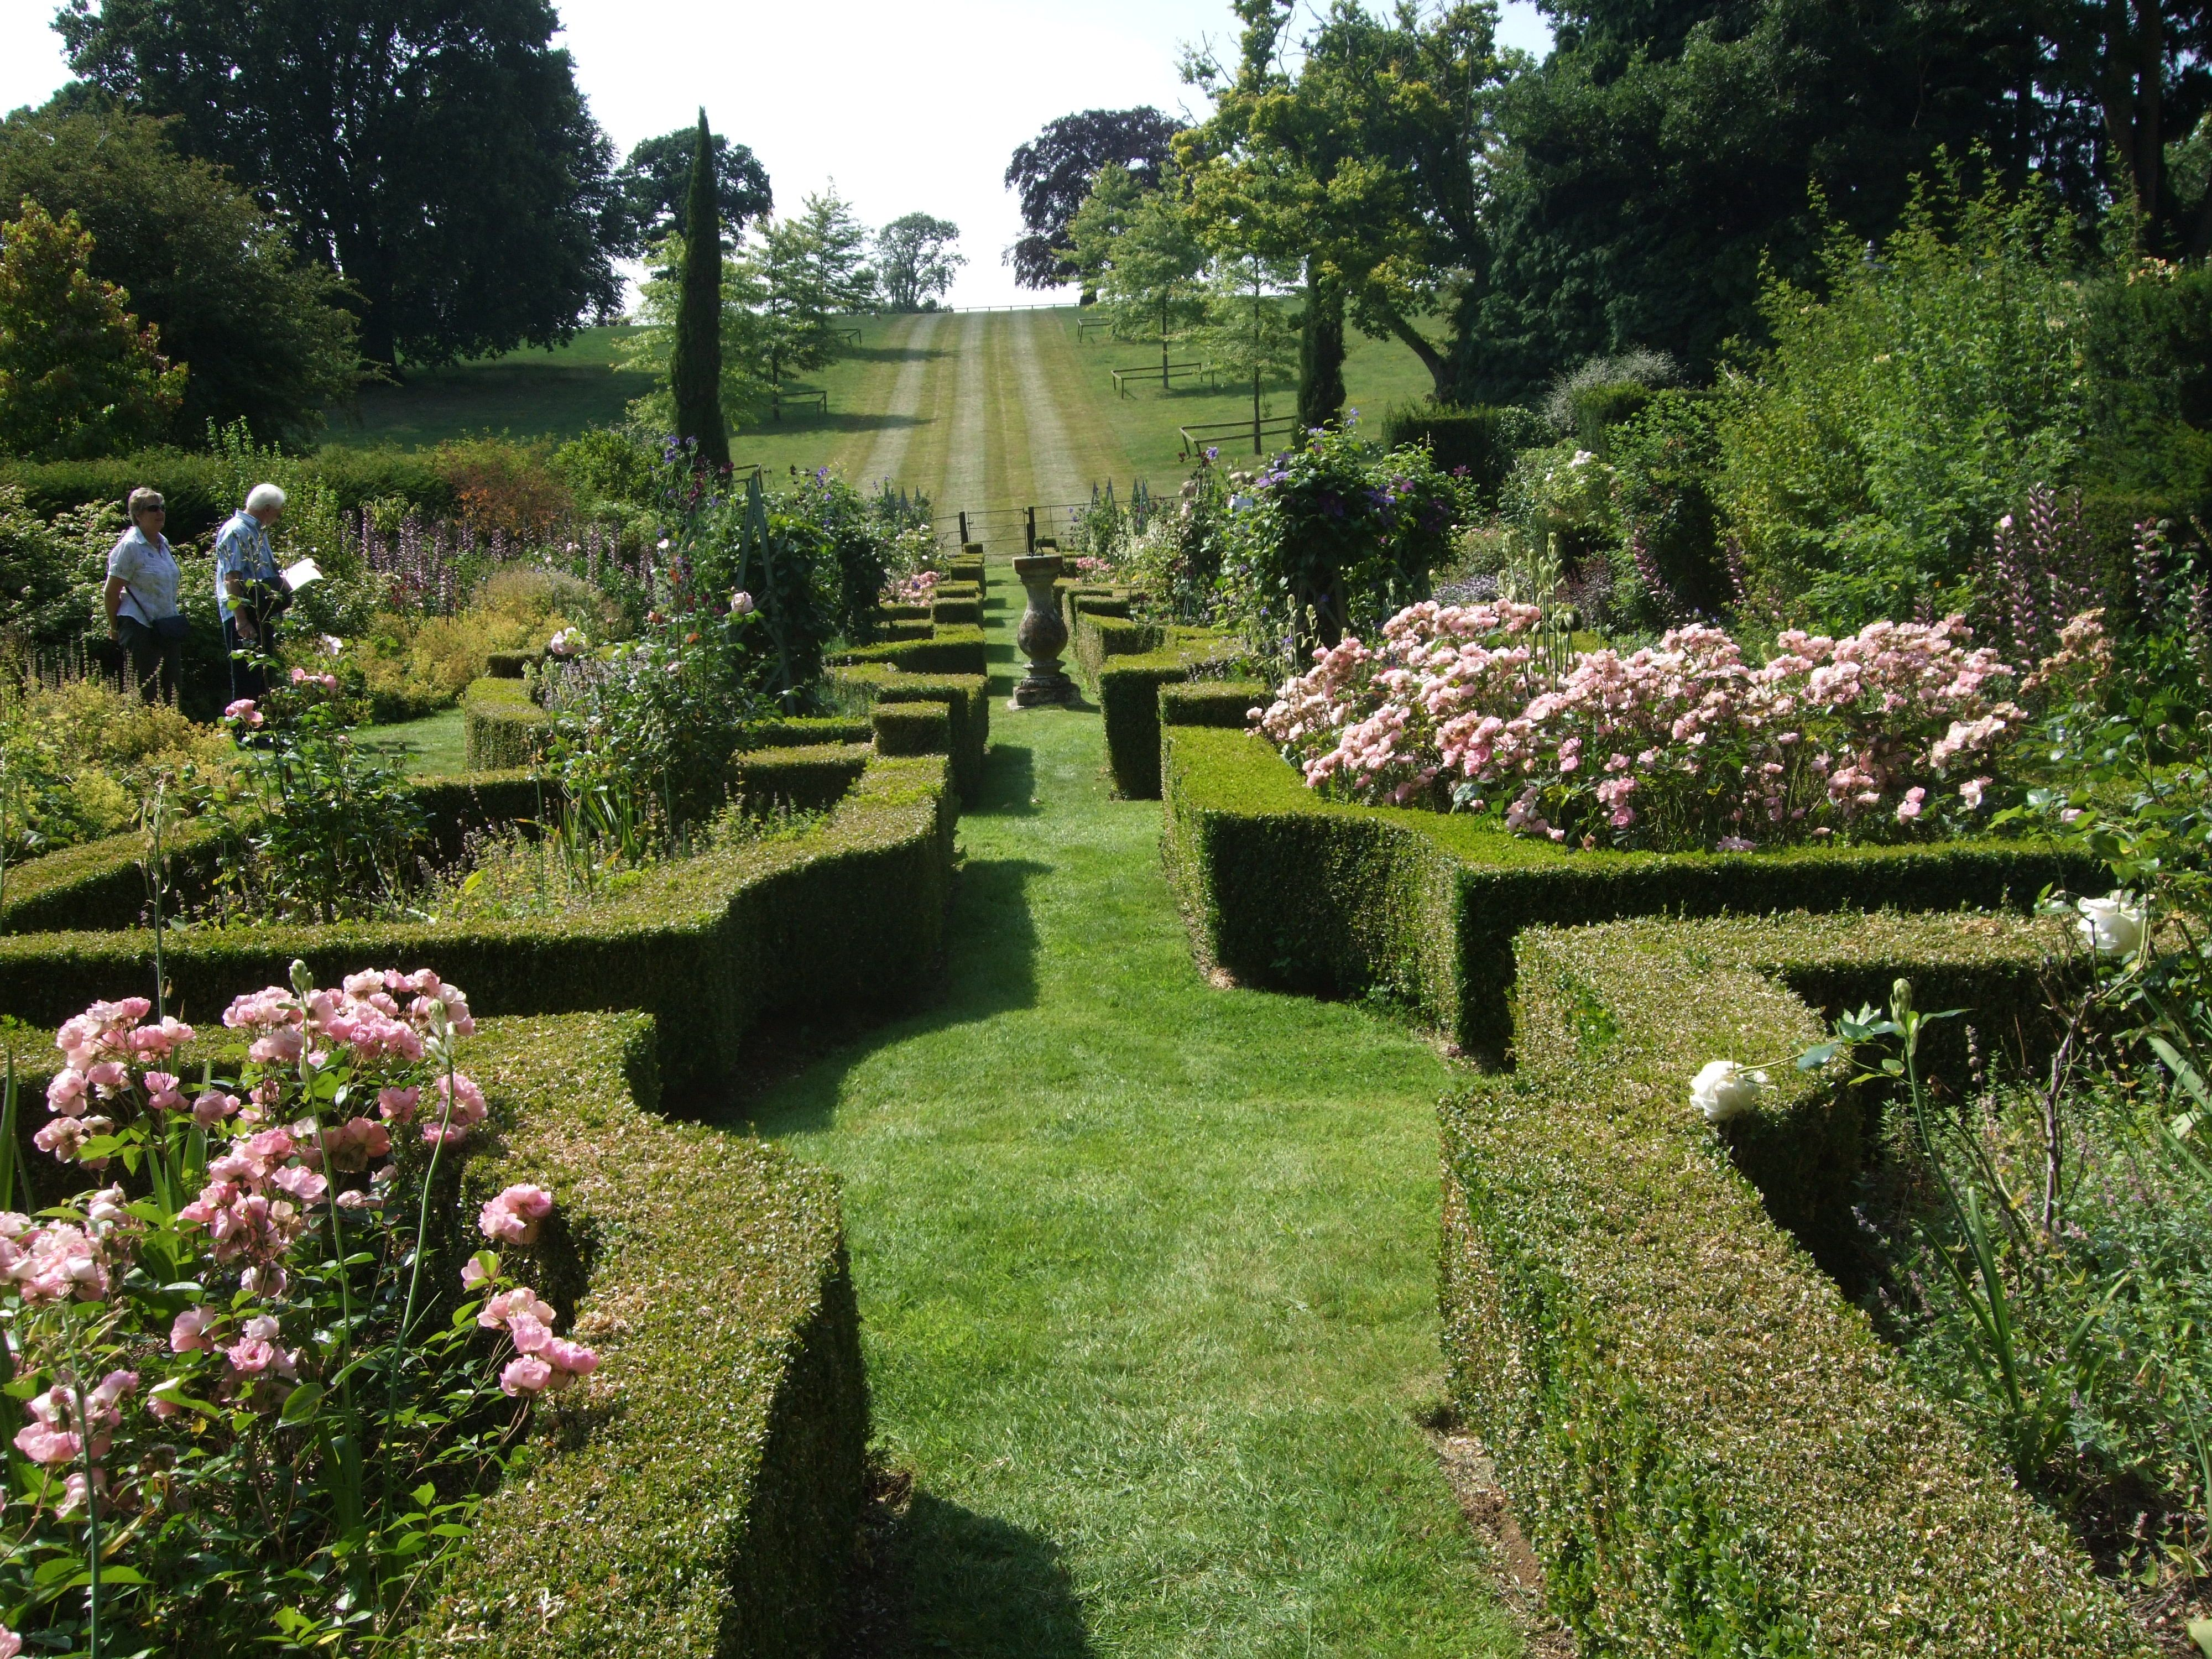 broughton grange ahh the english country garden took this as a